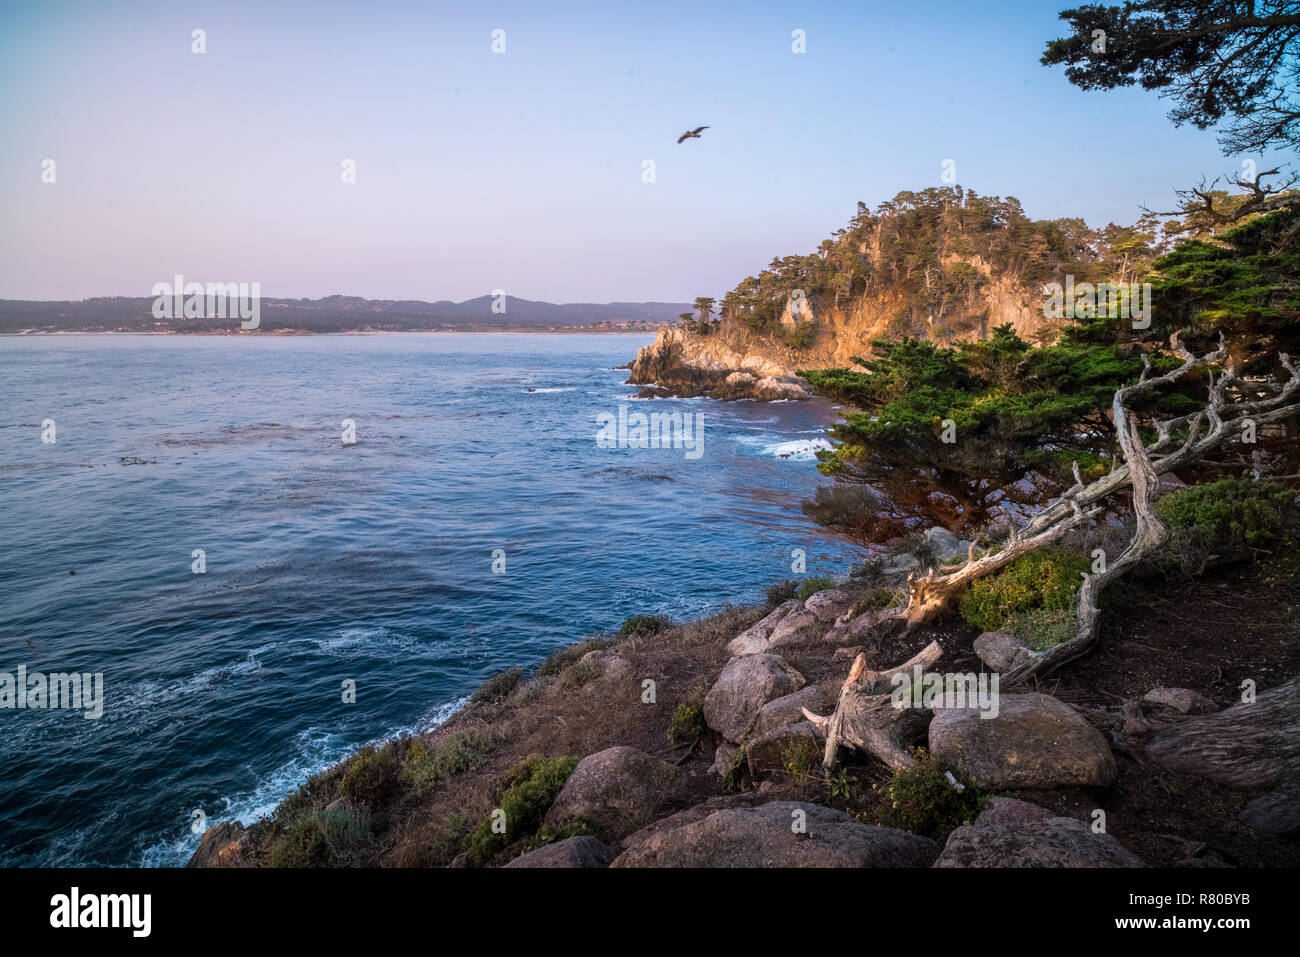 Point Lobos in Big Sur, California, including Morro Bay, McWay Falls, Bixby Creek, Pfieffer Beach, and Ragged Point - Stock Image